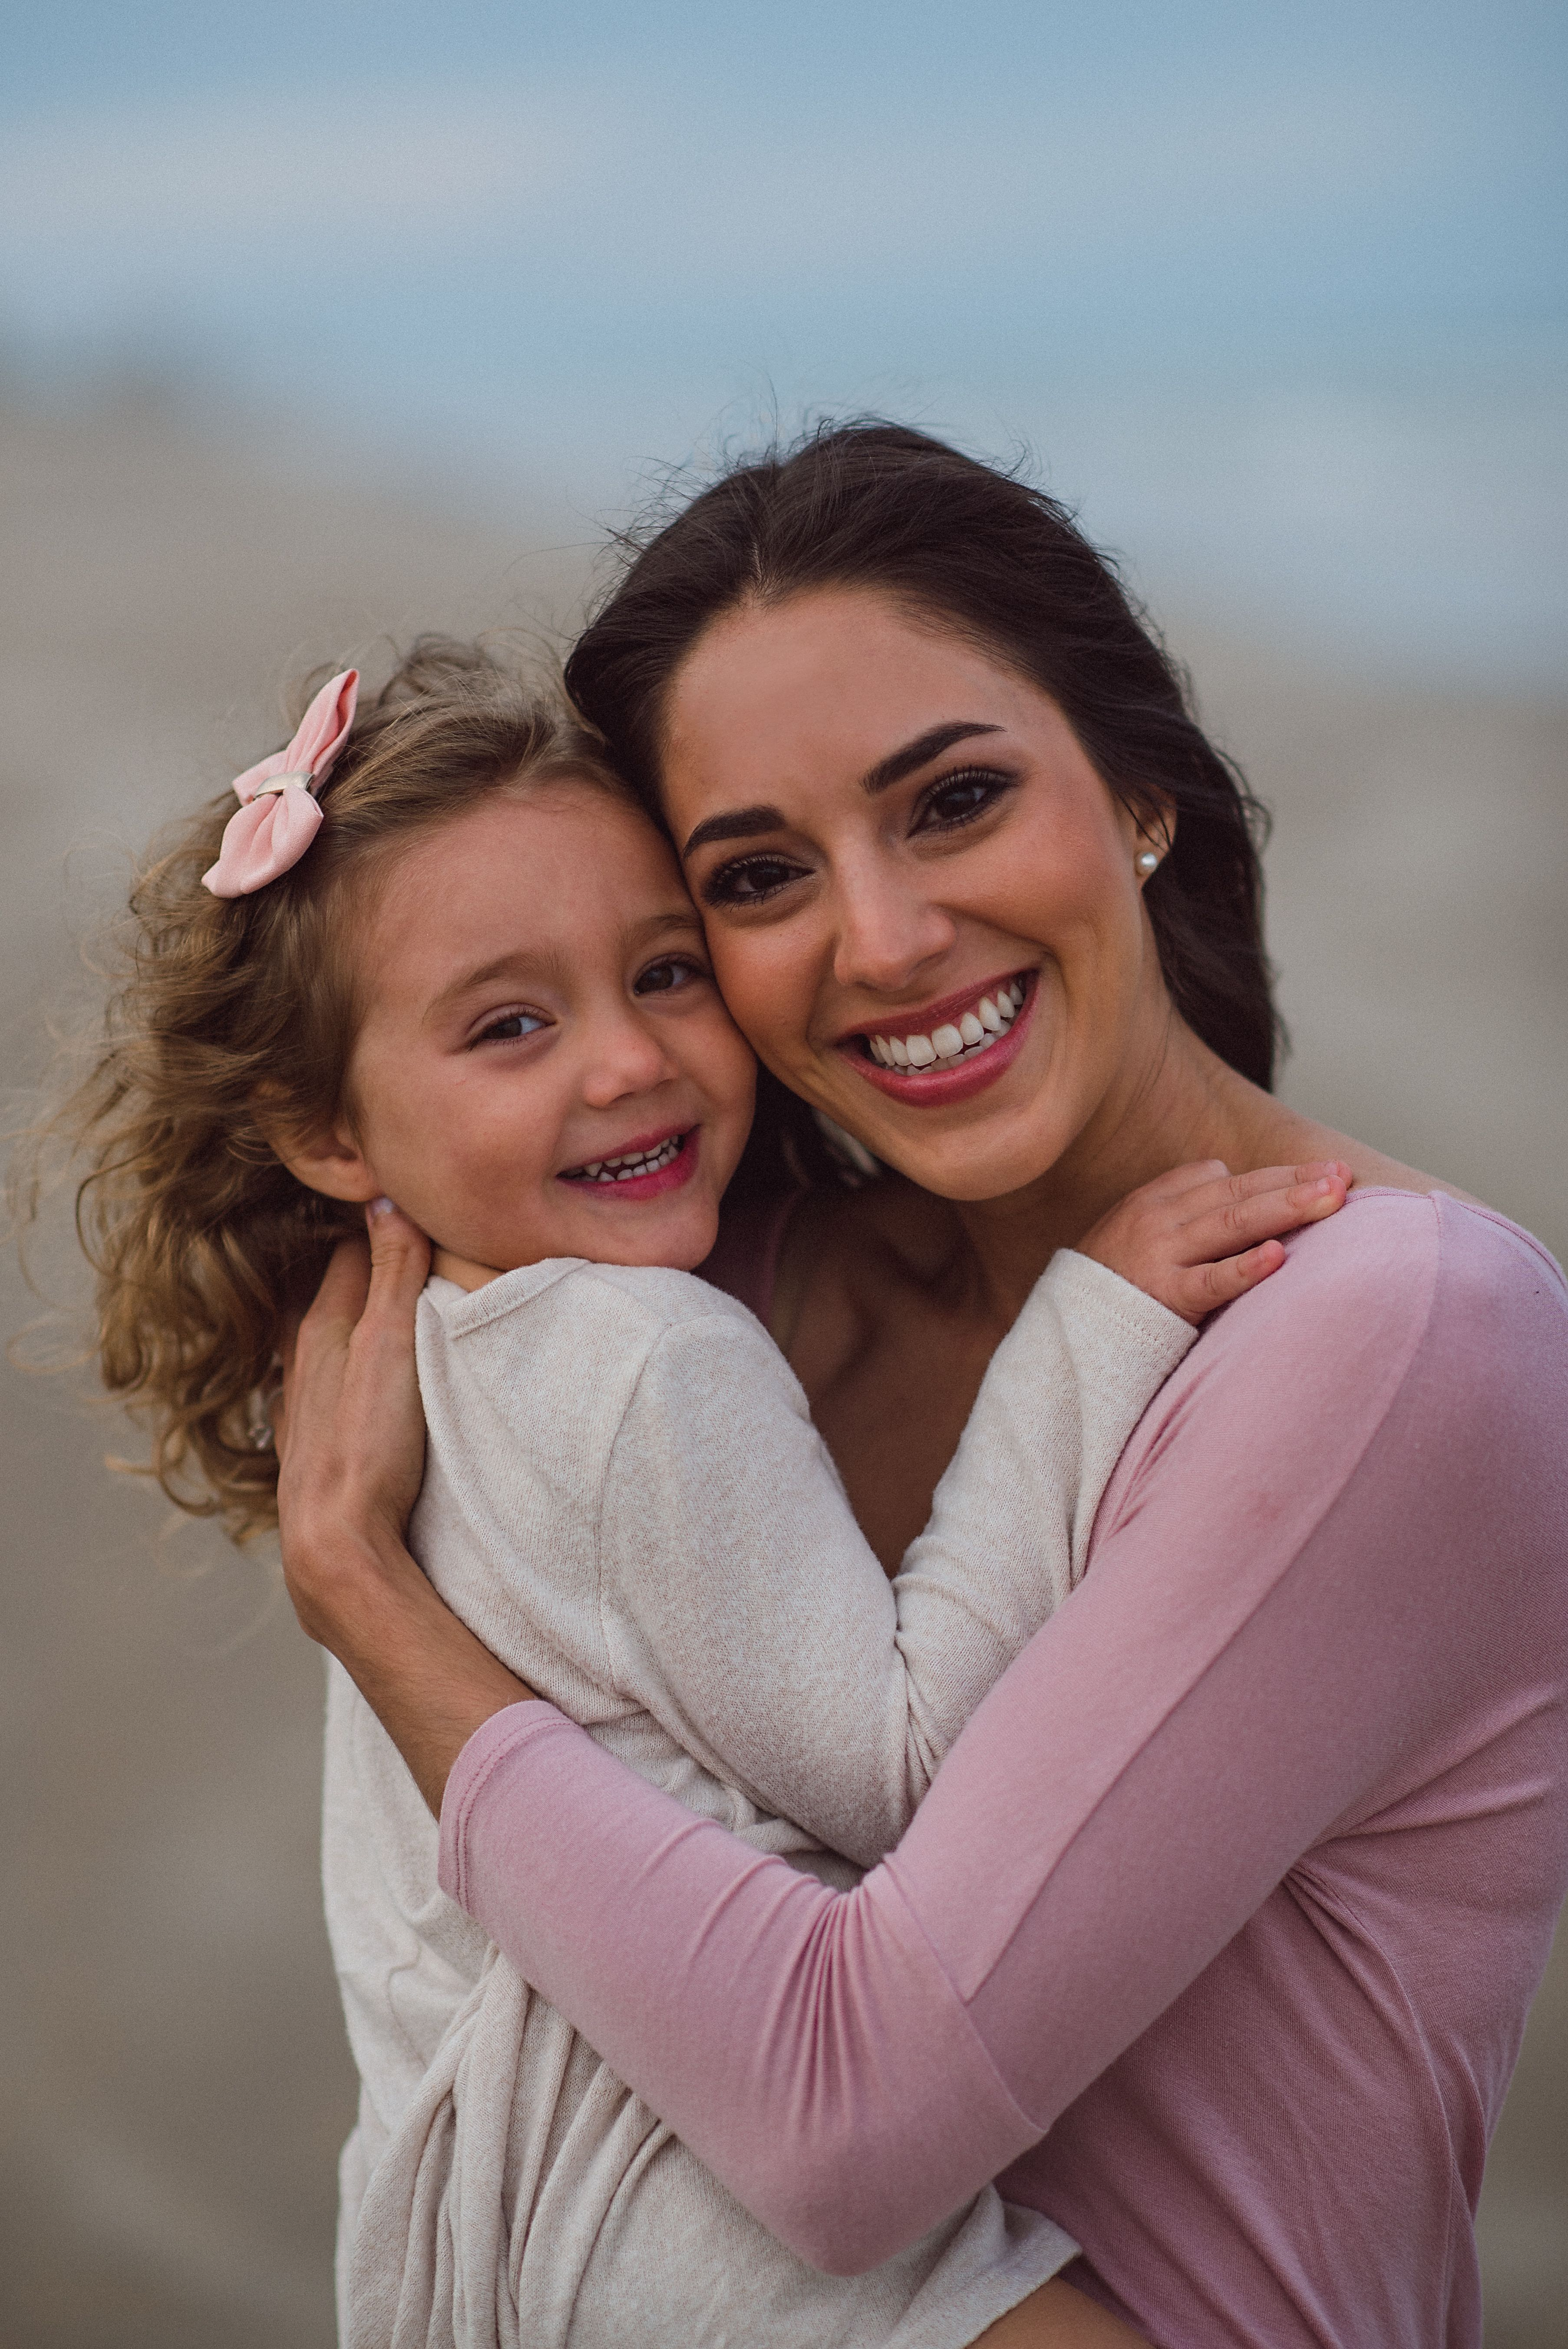 photography pose | Mother daughter photography, Mother